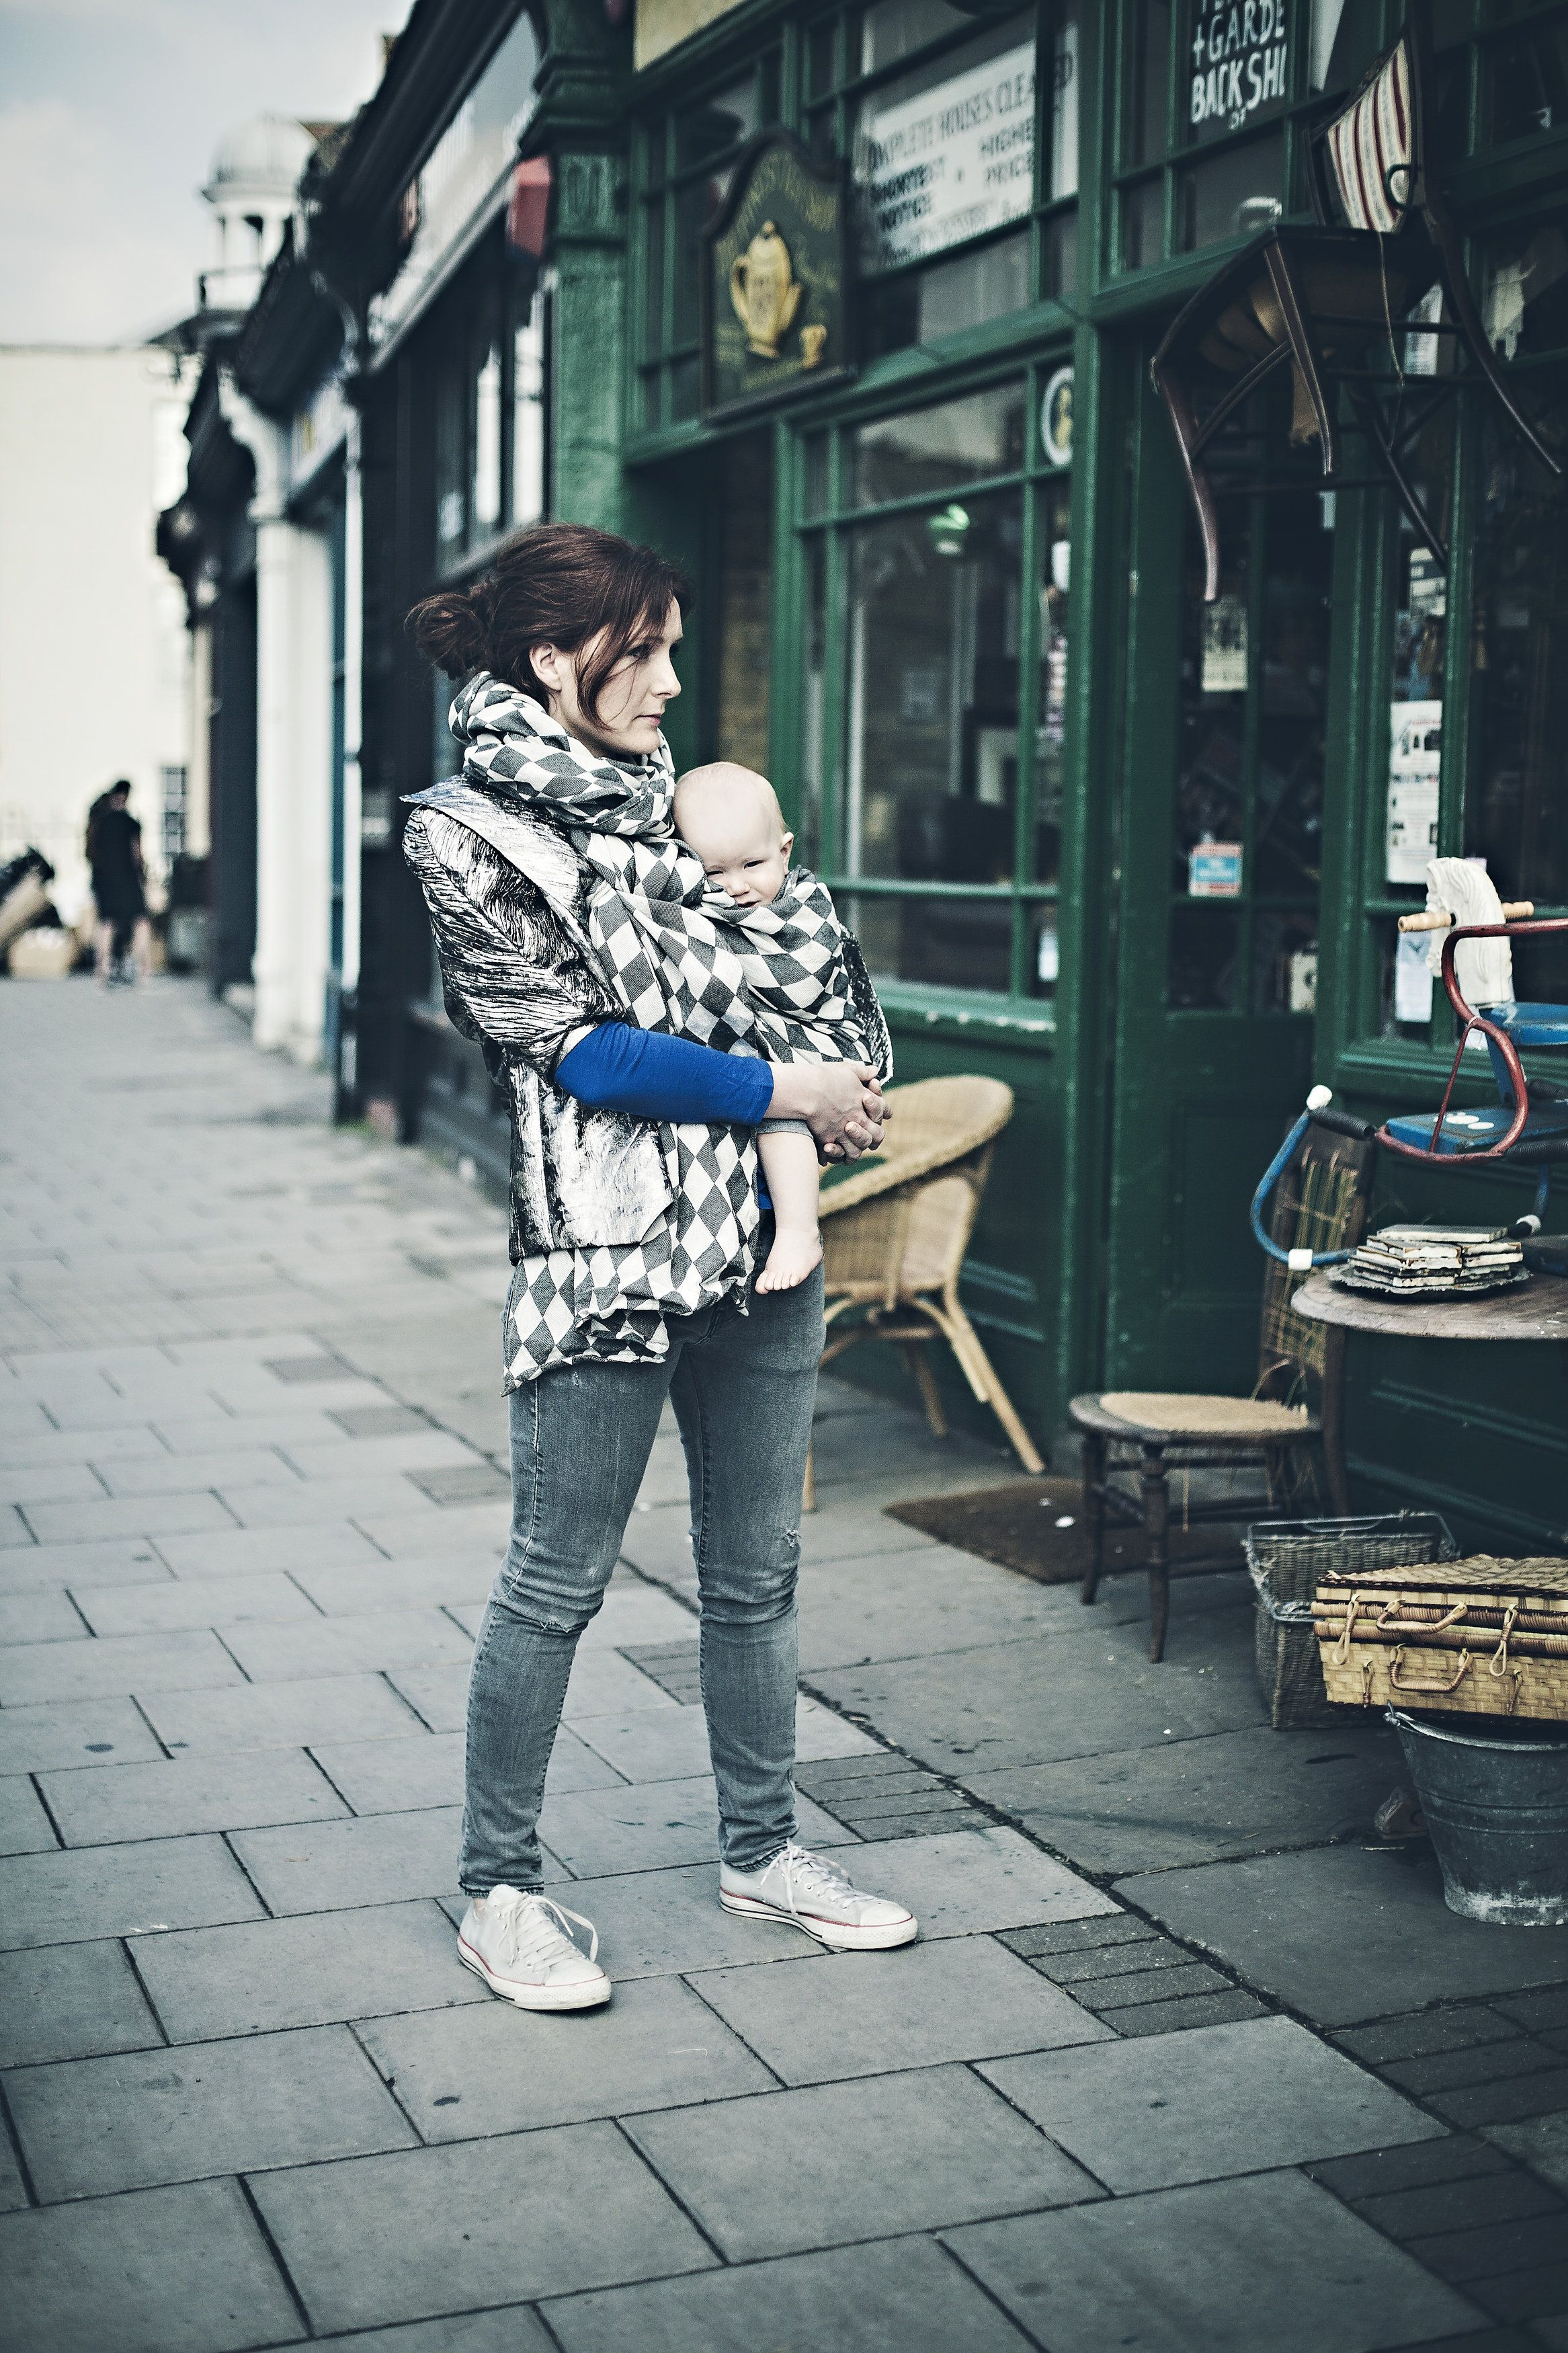 Poe Wovens, Harlequin Chic #London #Babywearing